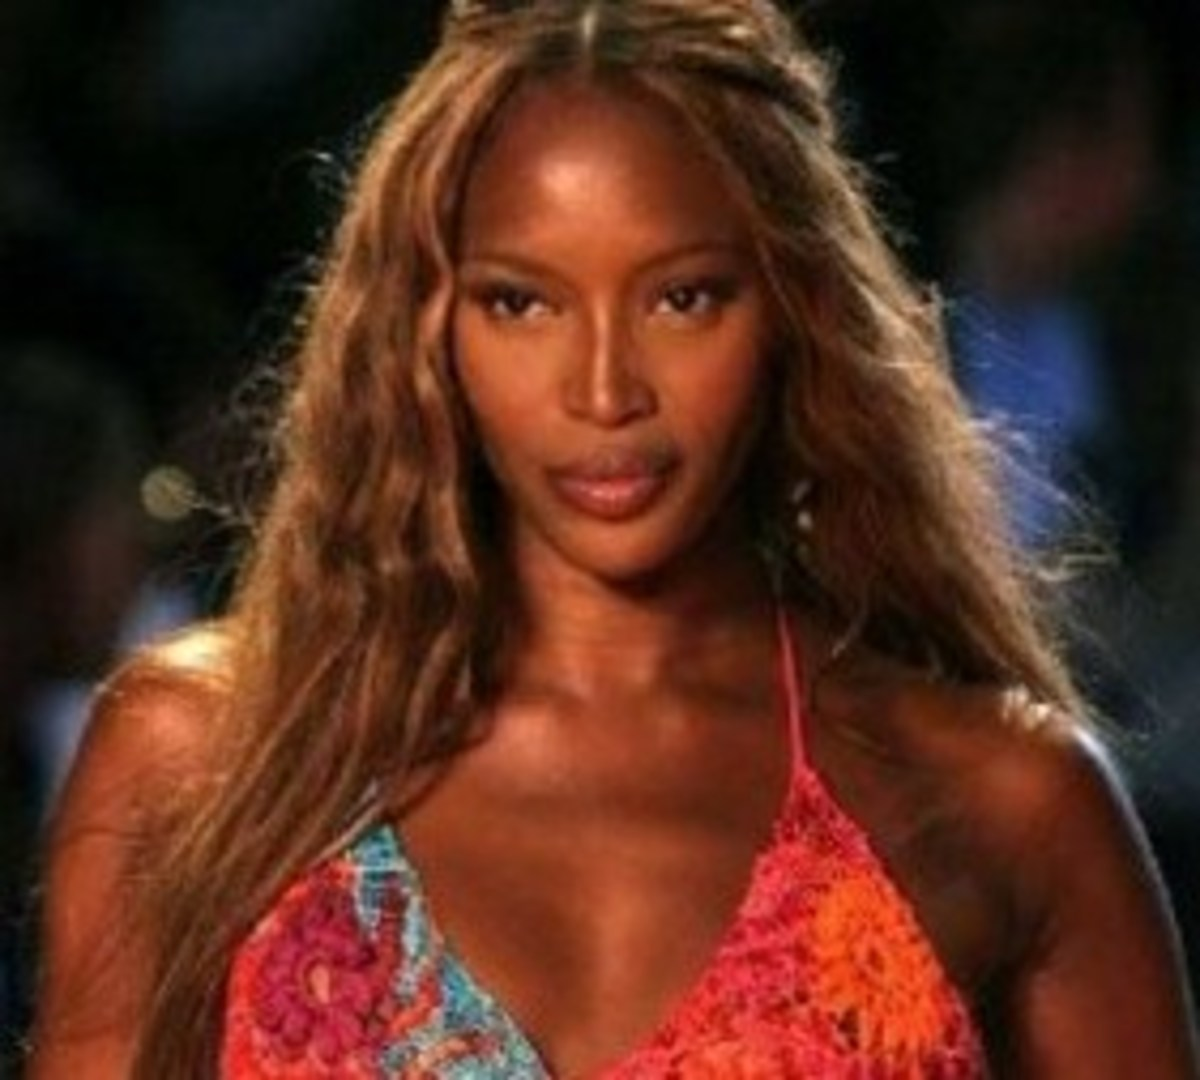 Naomi Campbell with long, wavy light hair. Black Women with Blonde Hair.